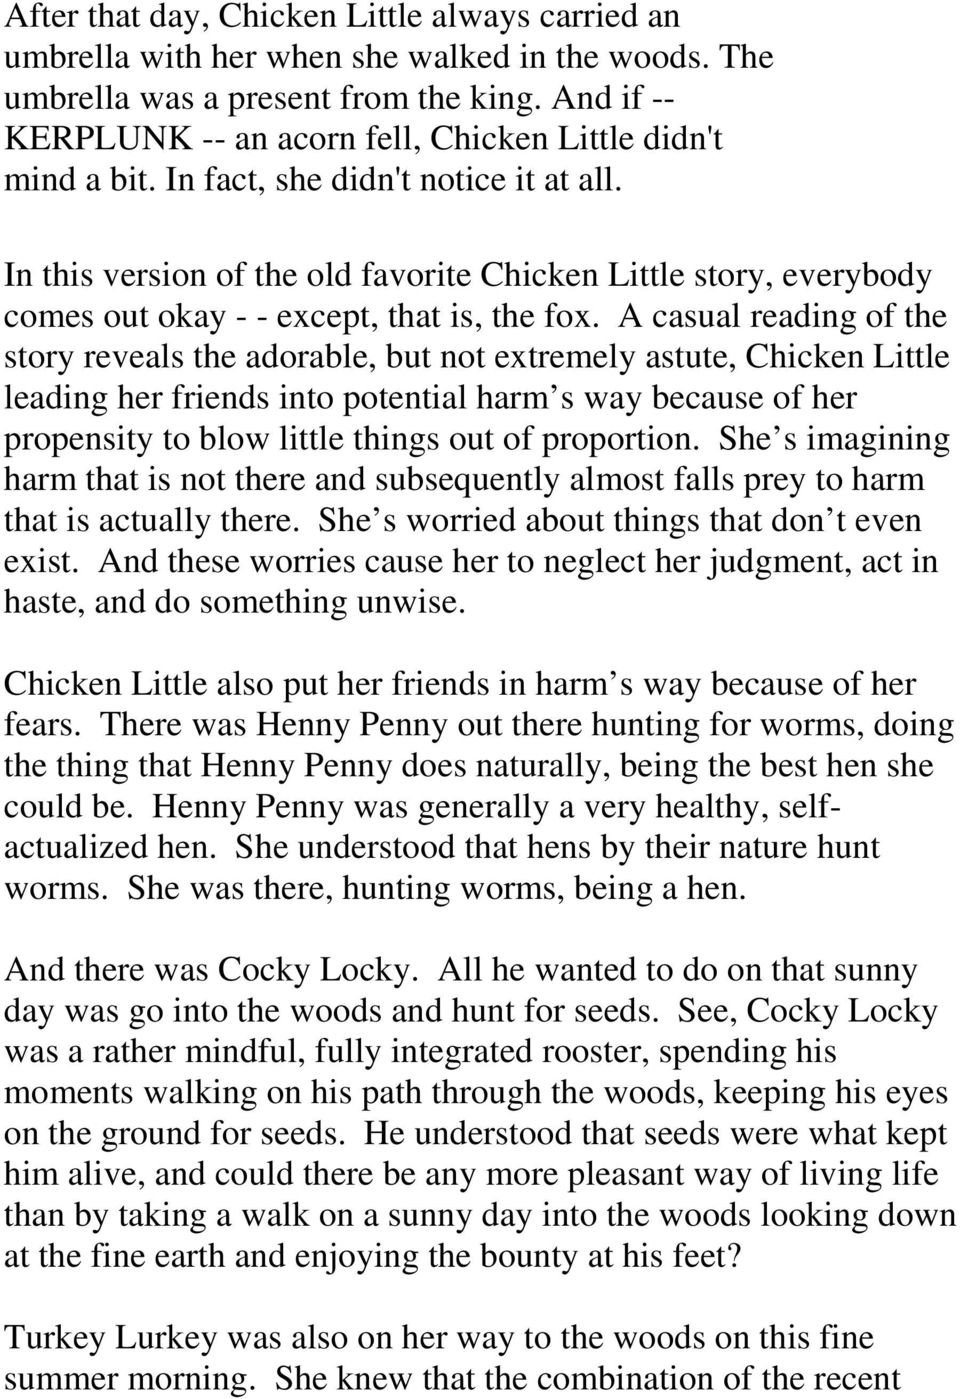 In this version of the old favorite Chicken Little story, everybody comes out okay - - except, that is, the fox.